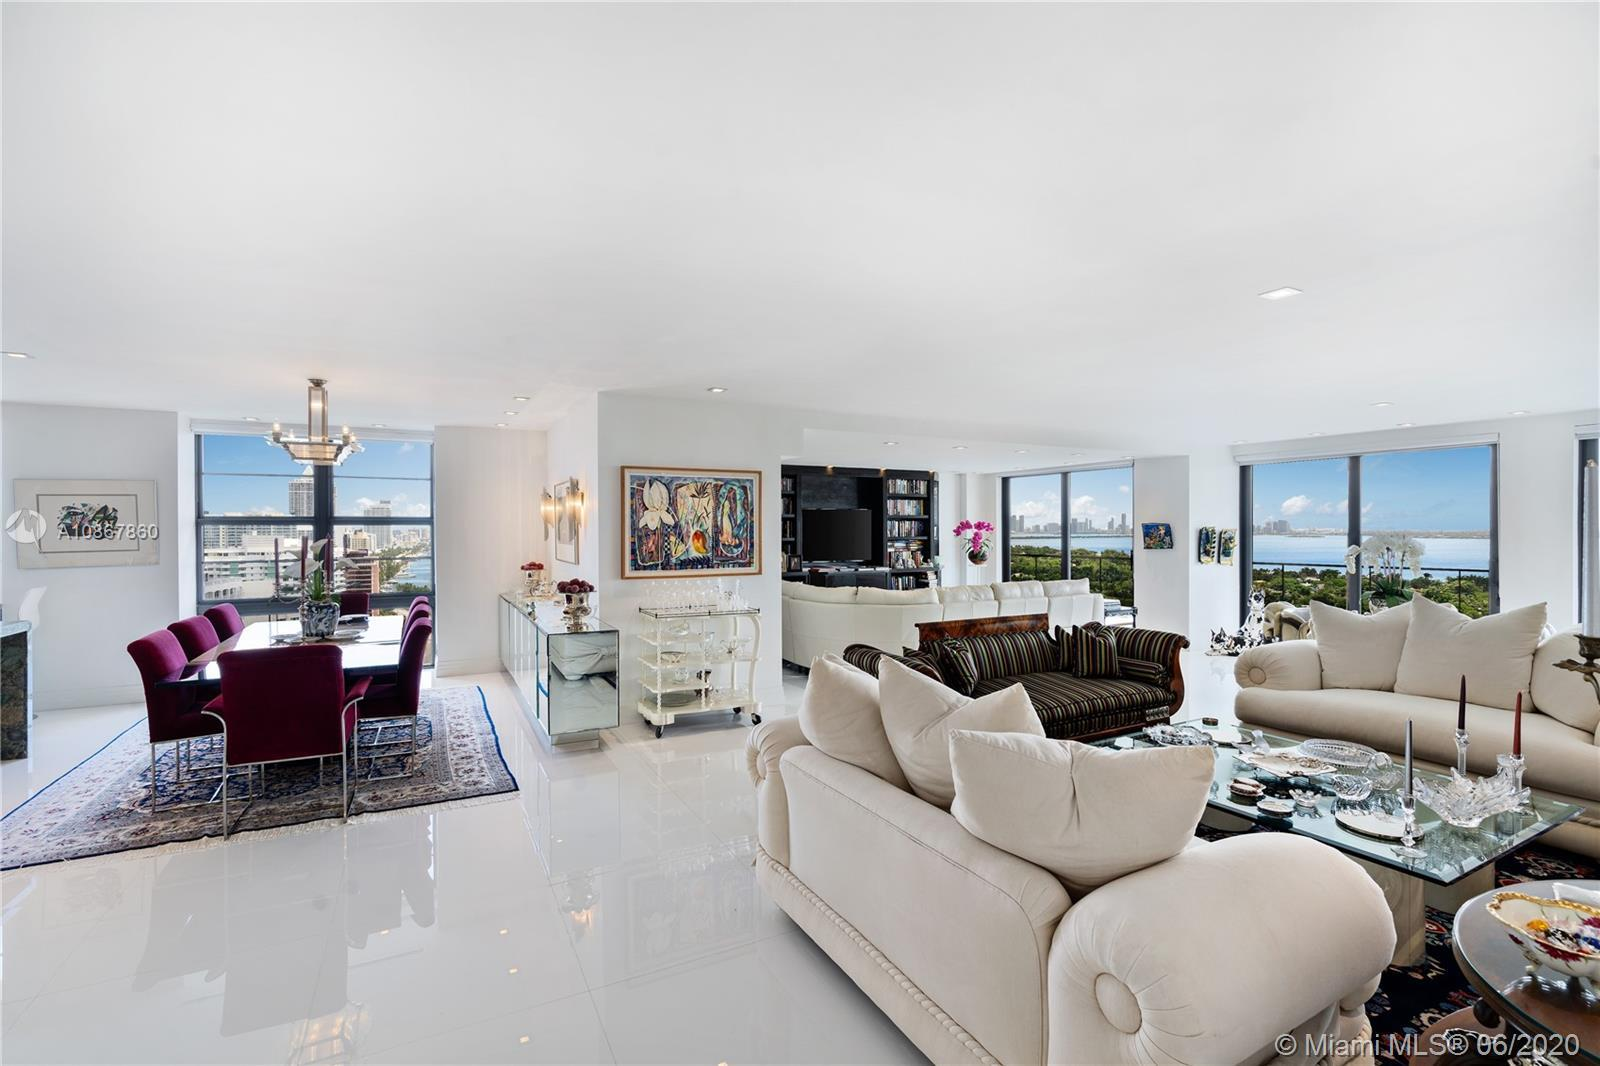 Remodeled corner residence offering panoramic intracoastal, Miami skyline, & Indian Creek Waterview